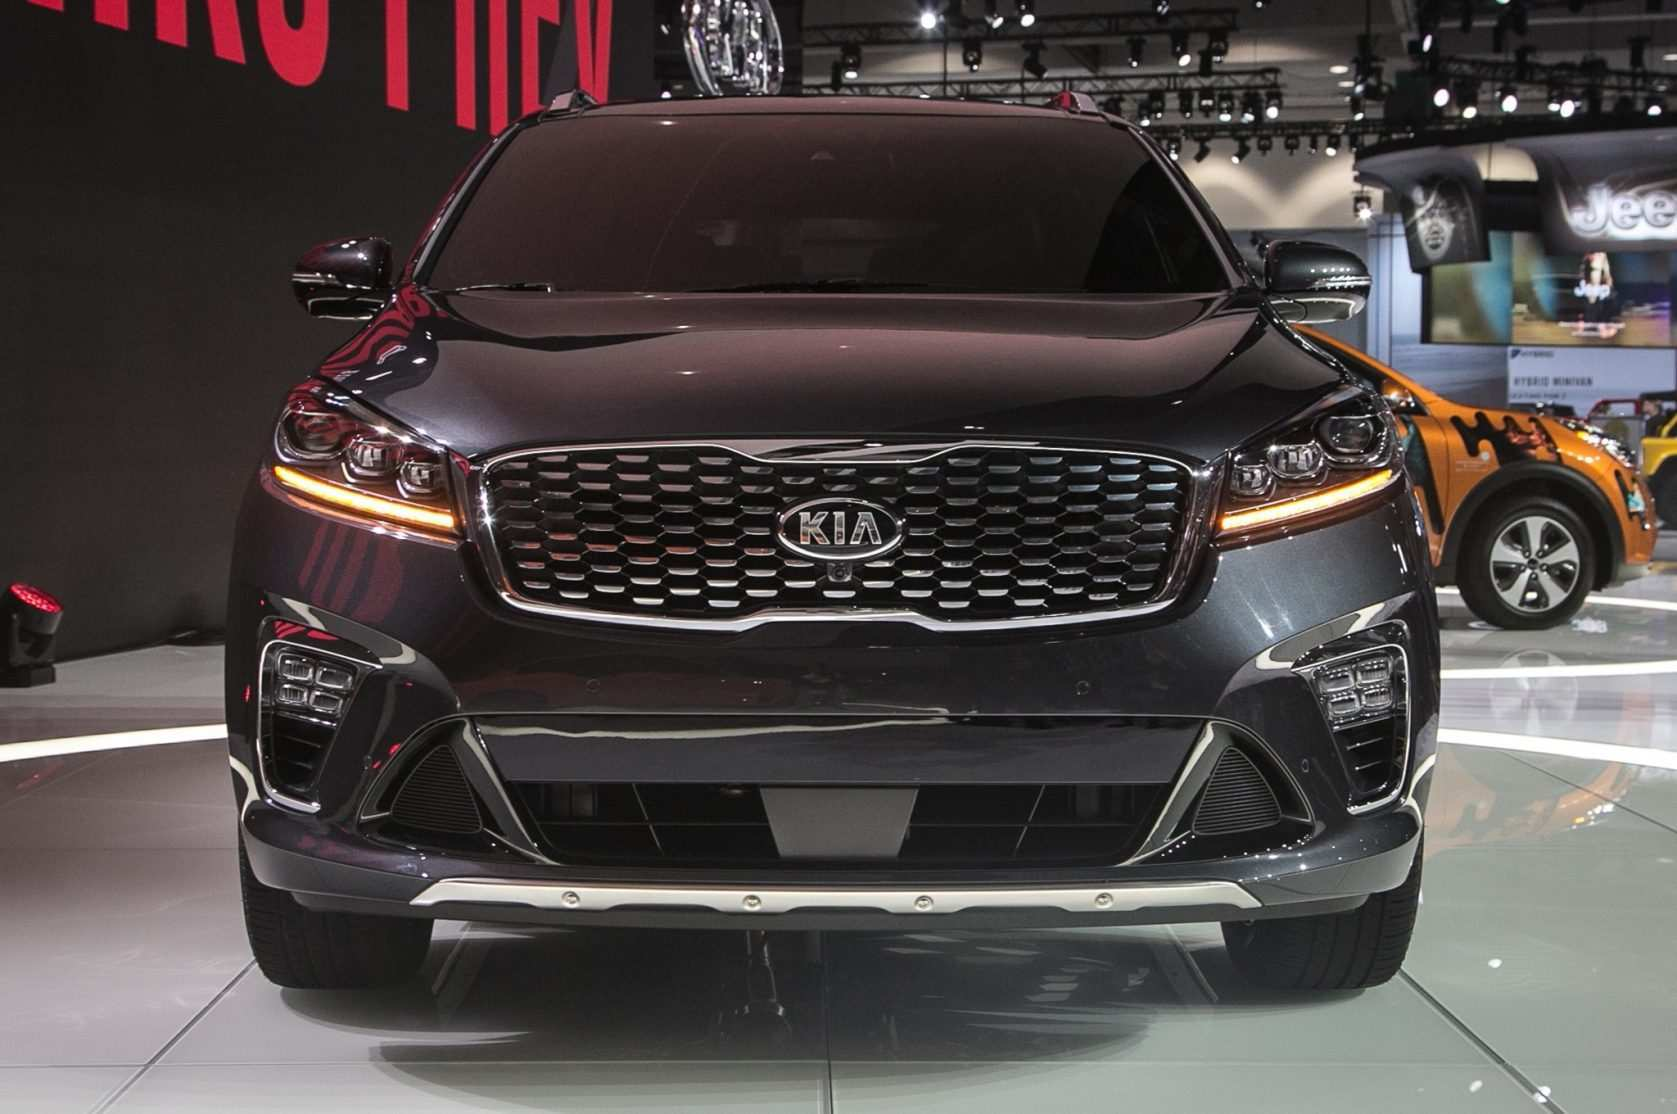 96 The 2020 Kia Sedona Release Date Release Date And Concept